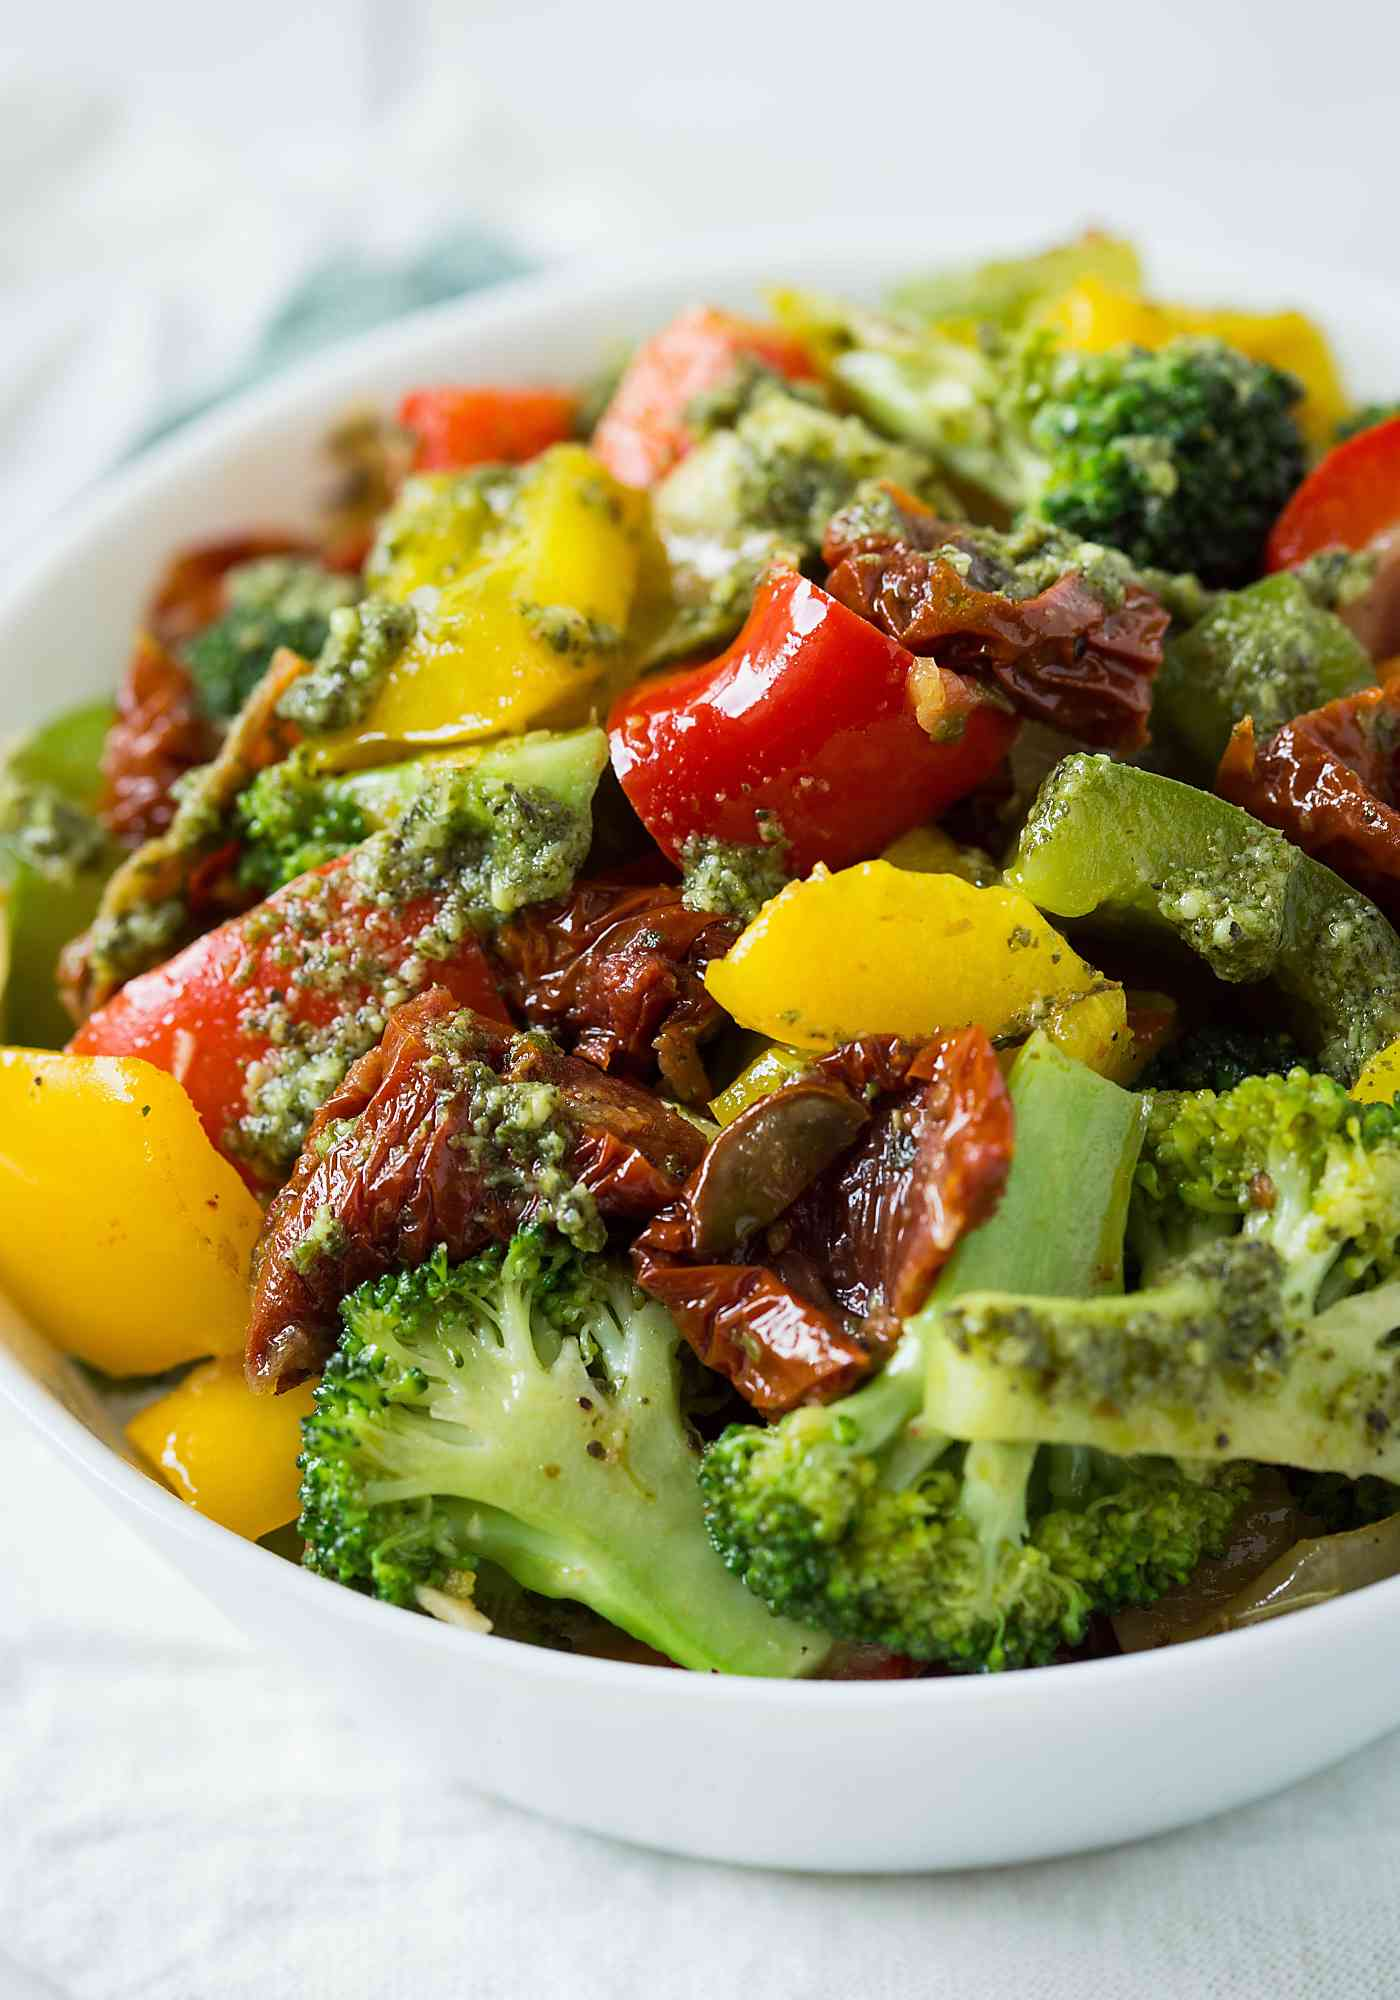 Bell Pepper Recipes: Veggie Stir Fry